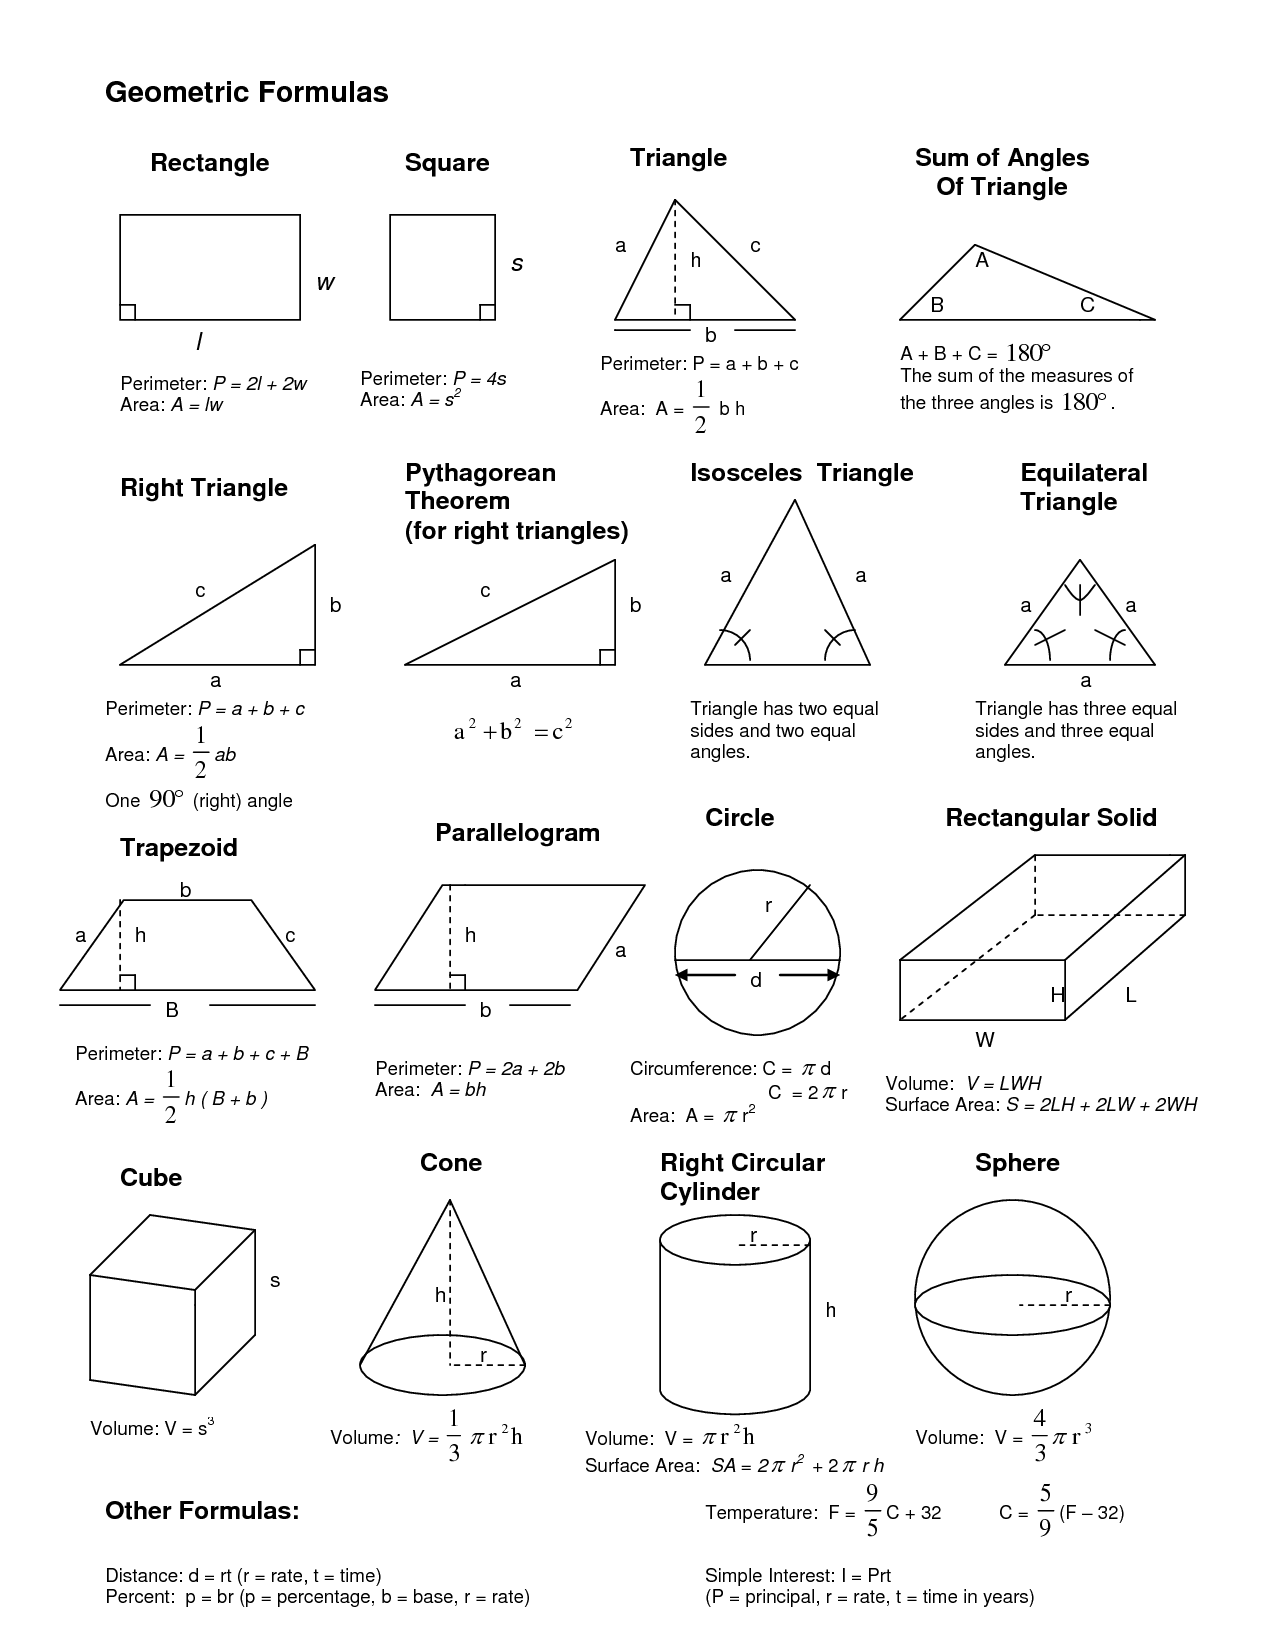 Geometrical Formulas With Images